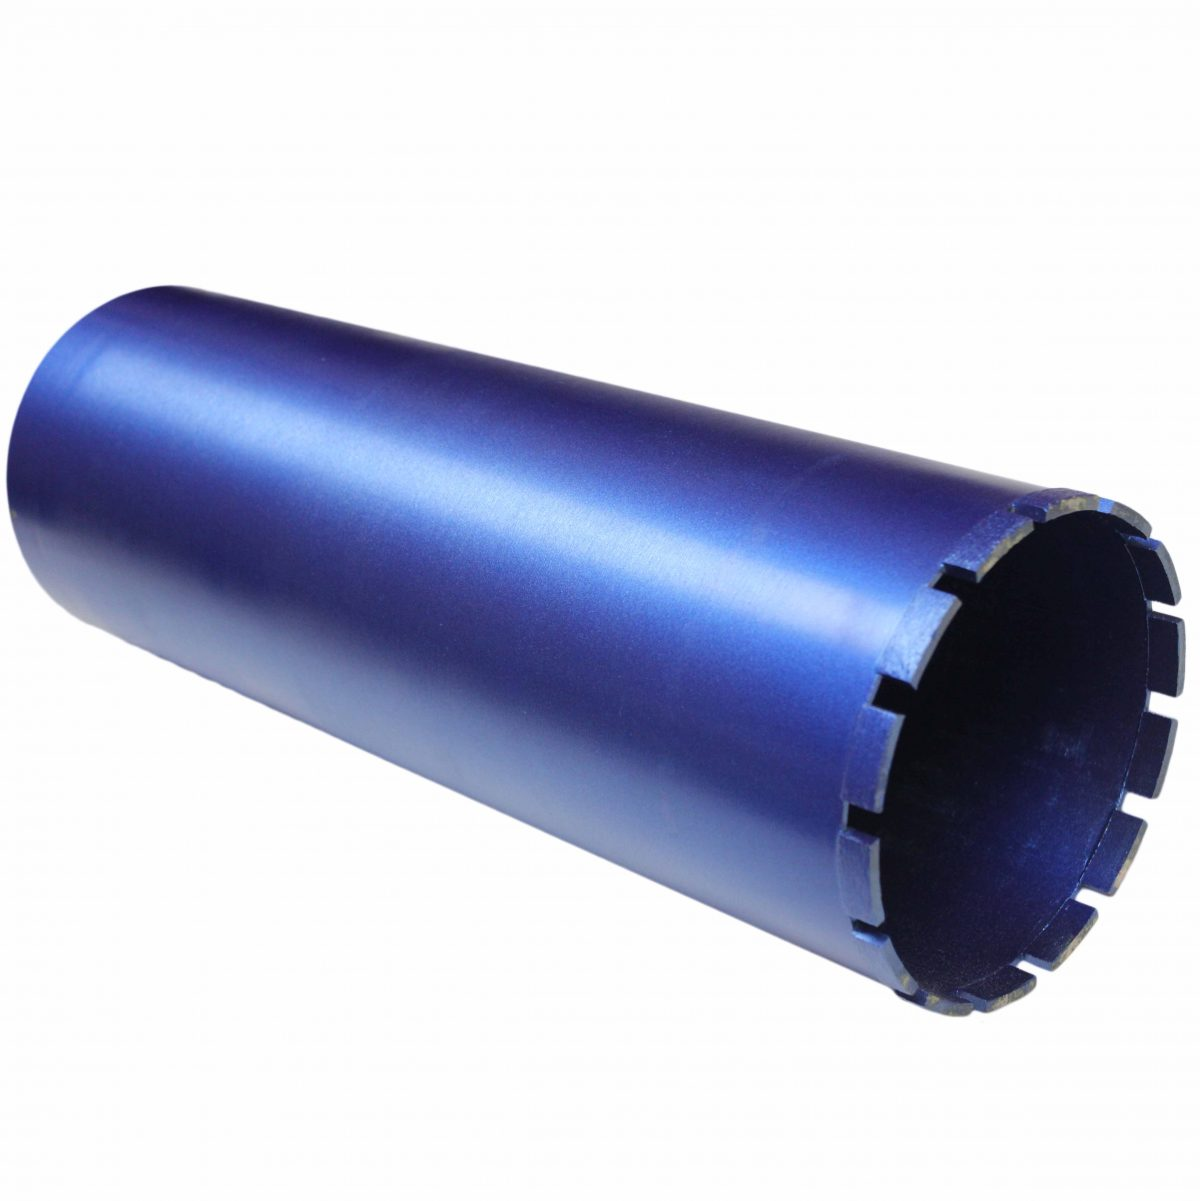 Diamond Core Drill Bits Moose Industrial Tools